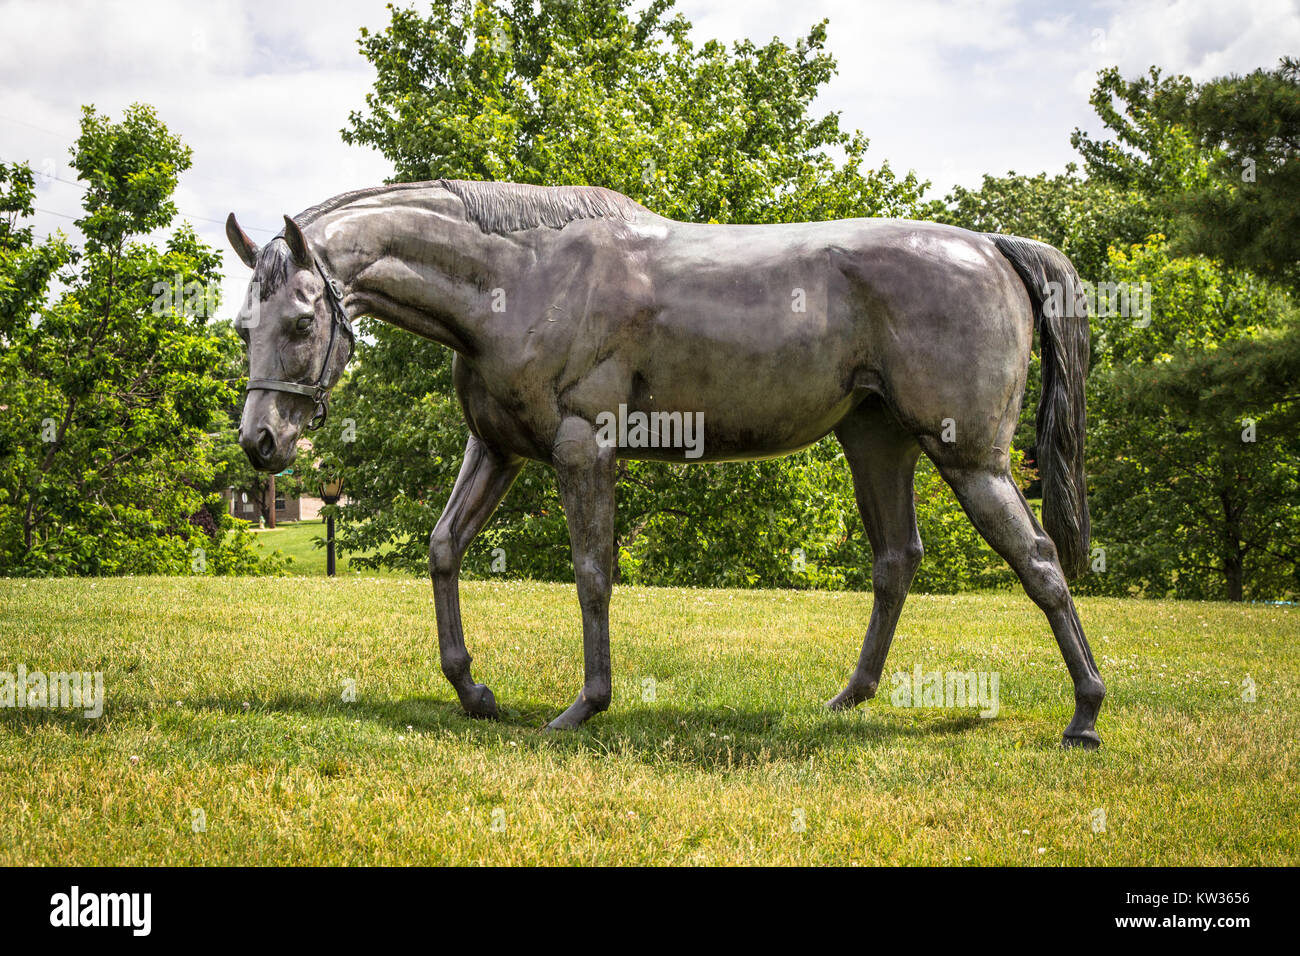 Lexington, Ky. USA. June 1, 2015. Thoroughbred Park features a dozen horse sculptures by Gweyn Reardon and is a - Stock Image